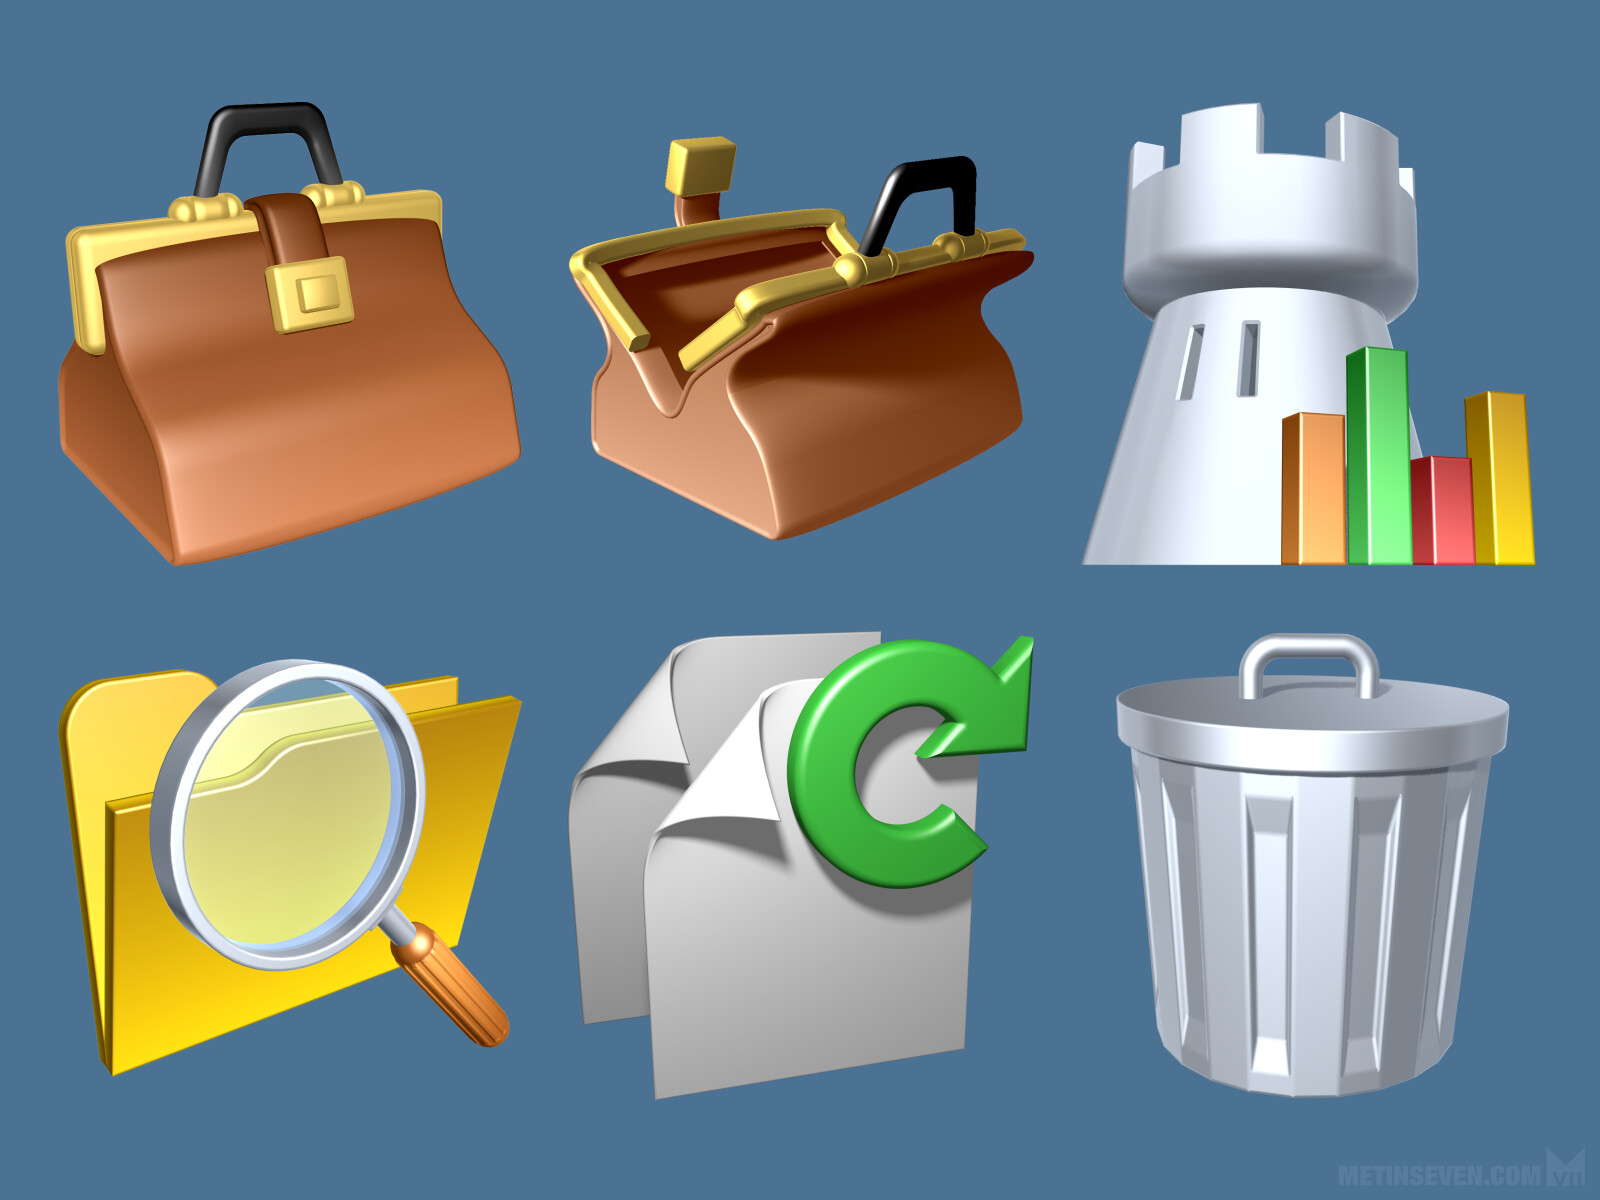 Selection of more than 200 3D icon designs for the OnGuard credit management software